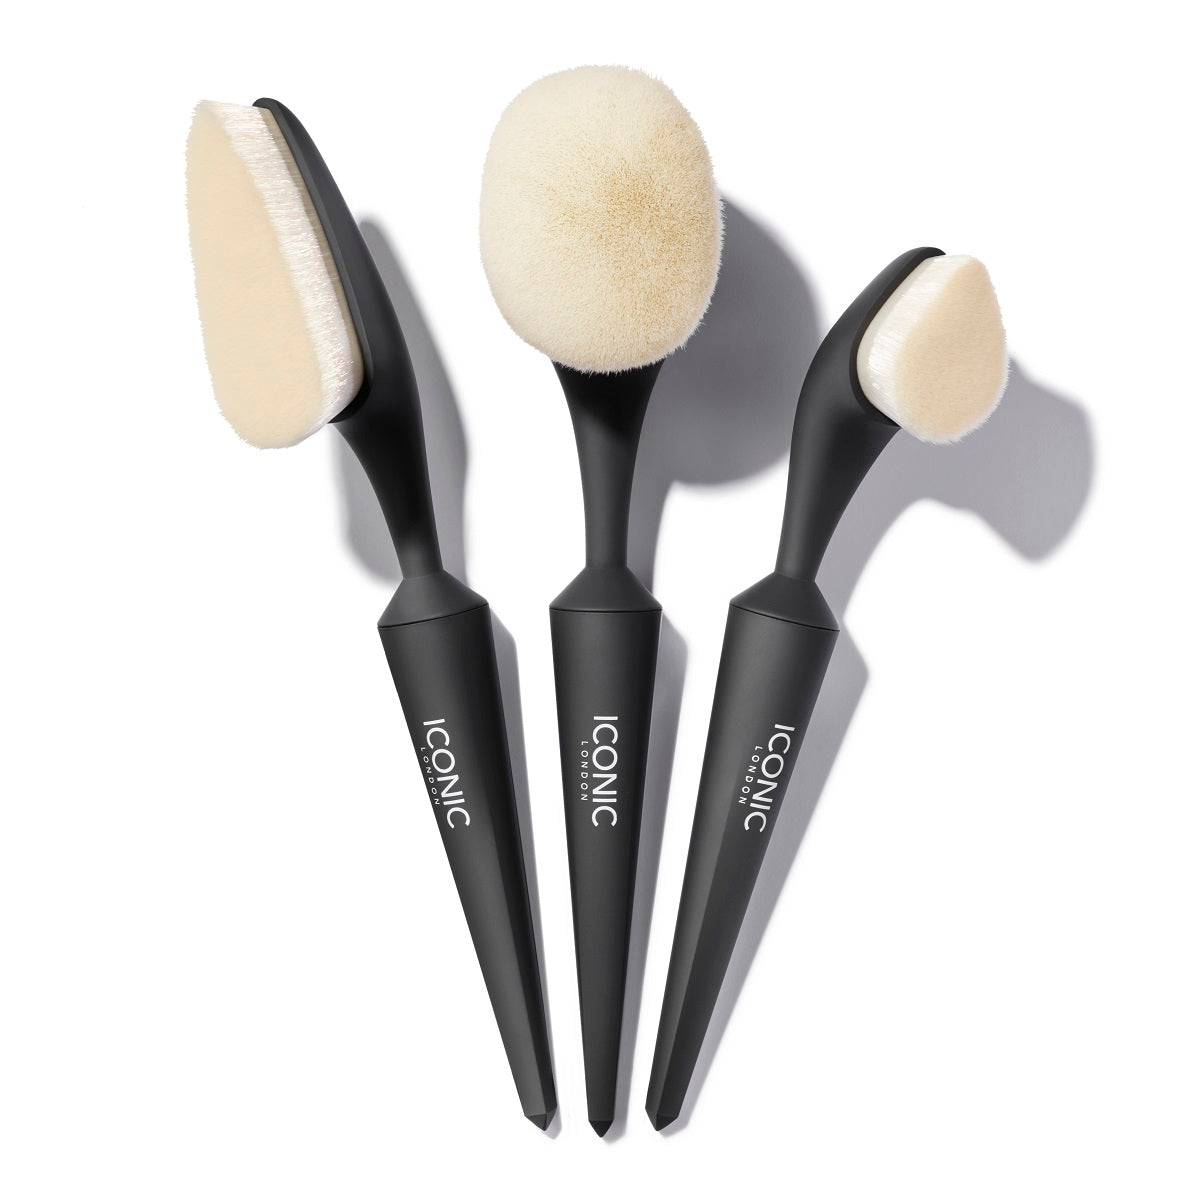 Black EVO Soft Touch Contour and Conceal 3 Brush Set